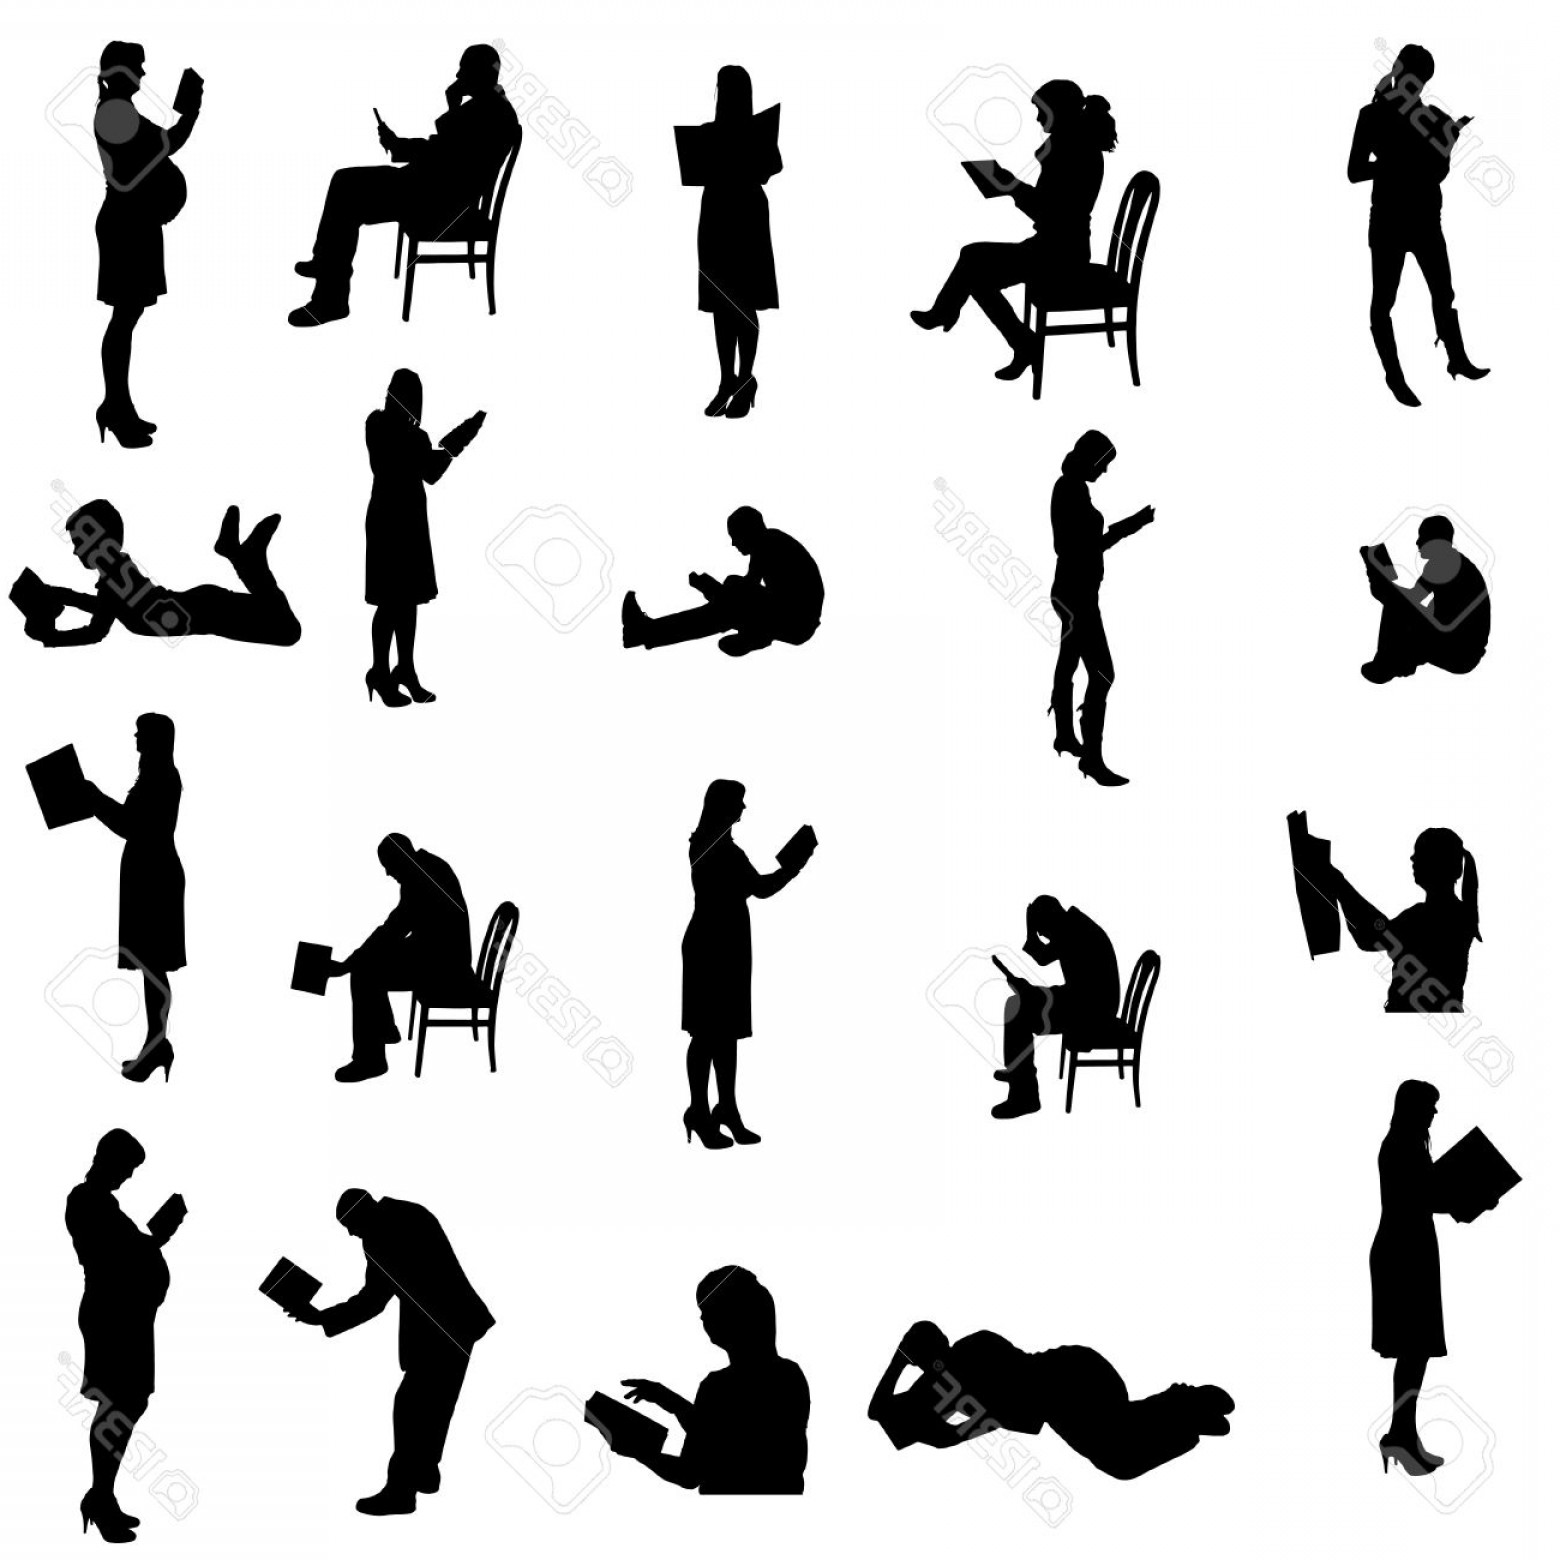 silhouette of a person sitting free person sitting png silhouette download free clip art of person sitting silhouette a